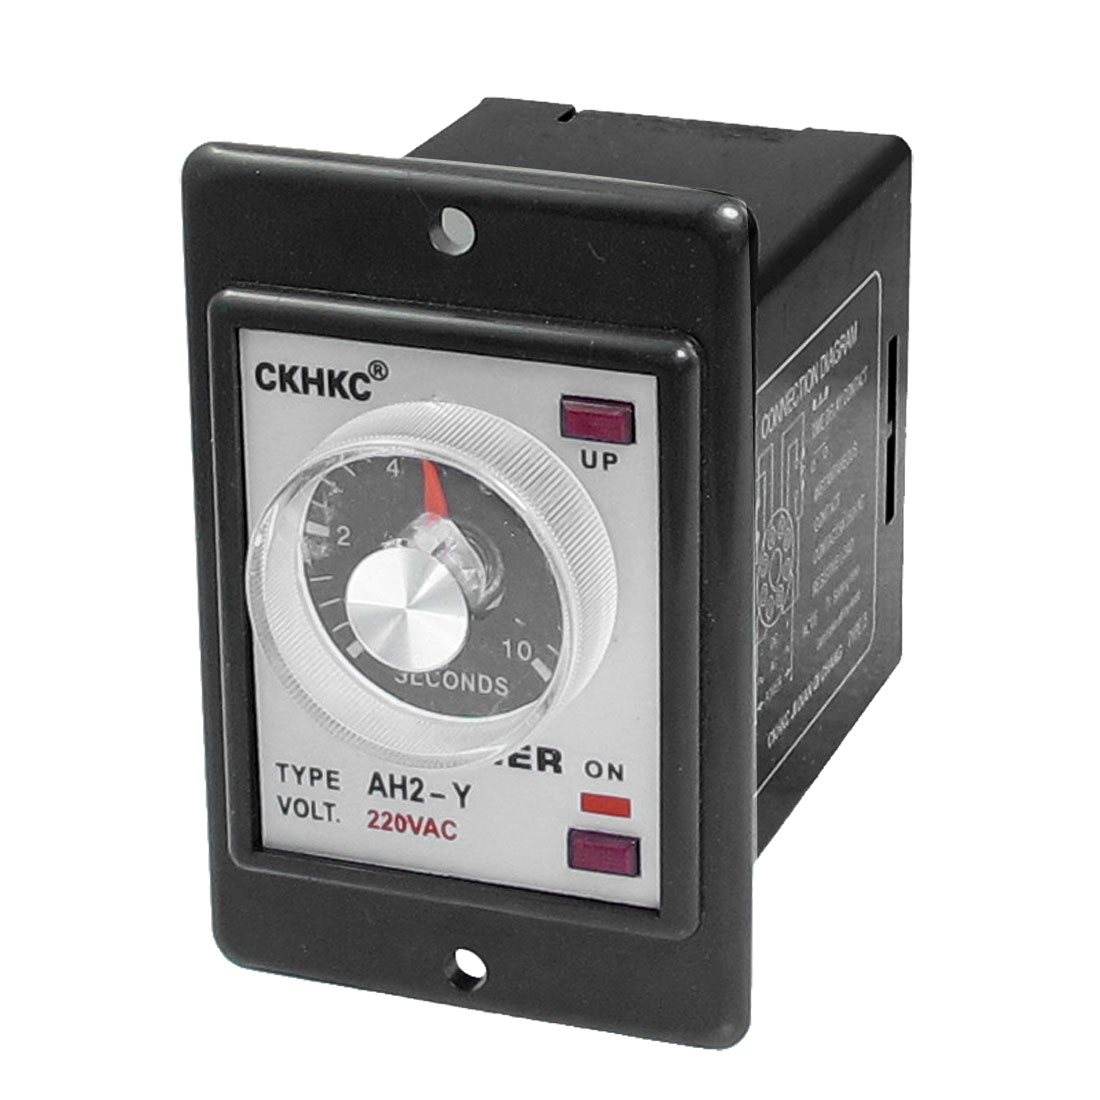 Rotary Knob DPDT 8P 10 Seconds 10S Timer Time Relay AC 220V w LED Indicator